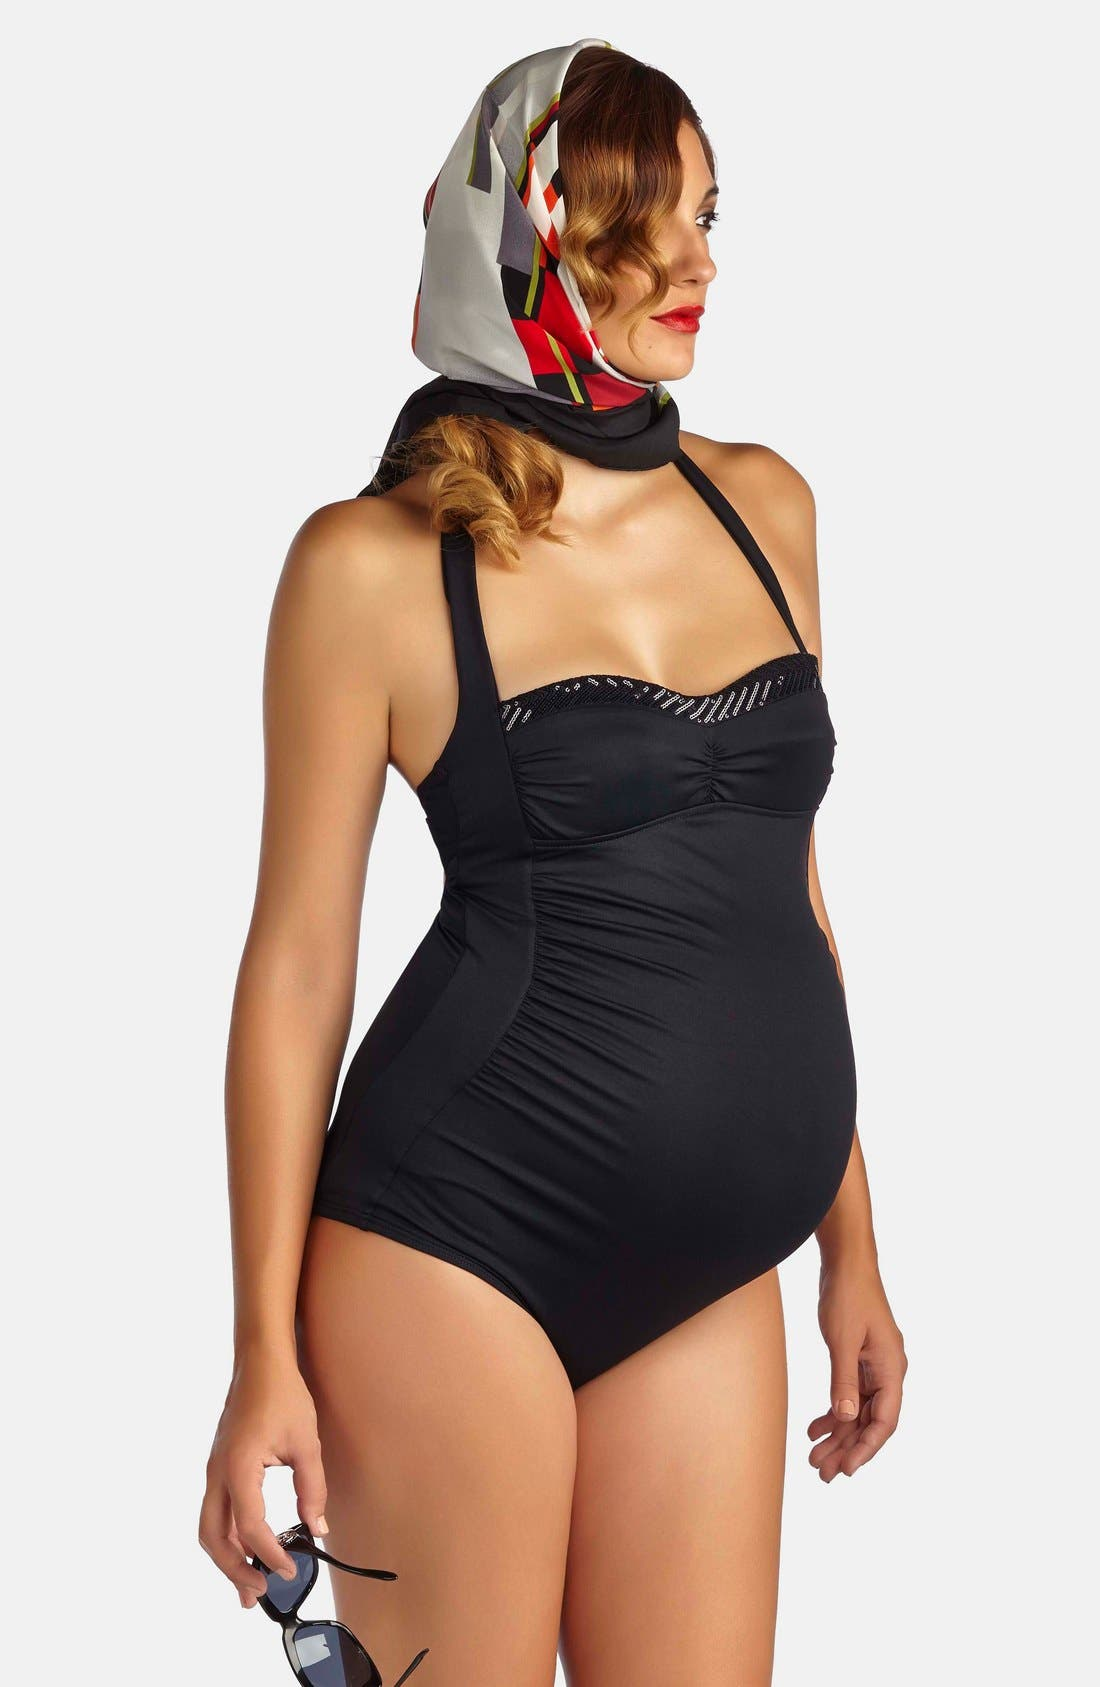 Main Image - Pez D'Or 'Retro' Ruched One-Piece Maternity Swimsuit